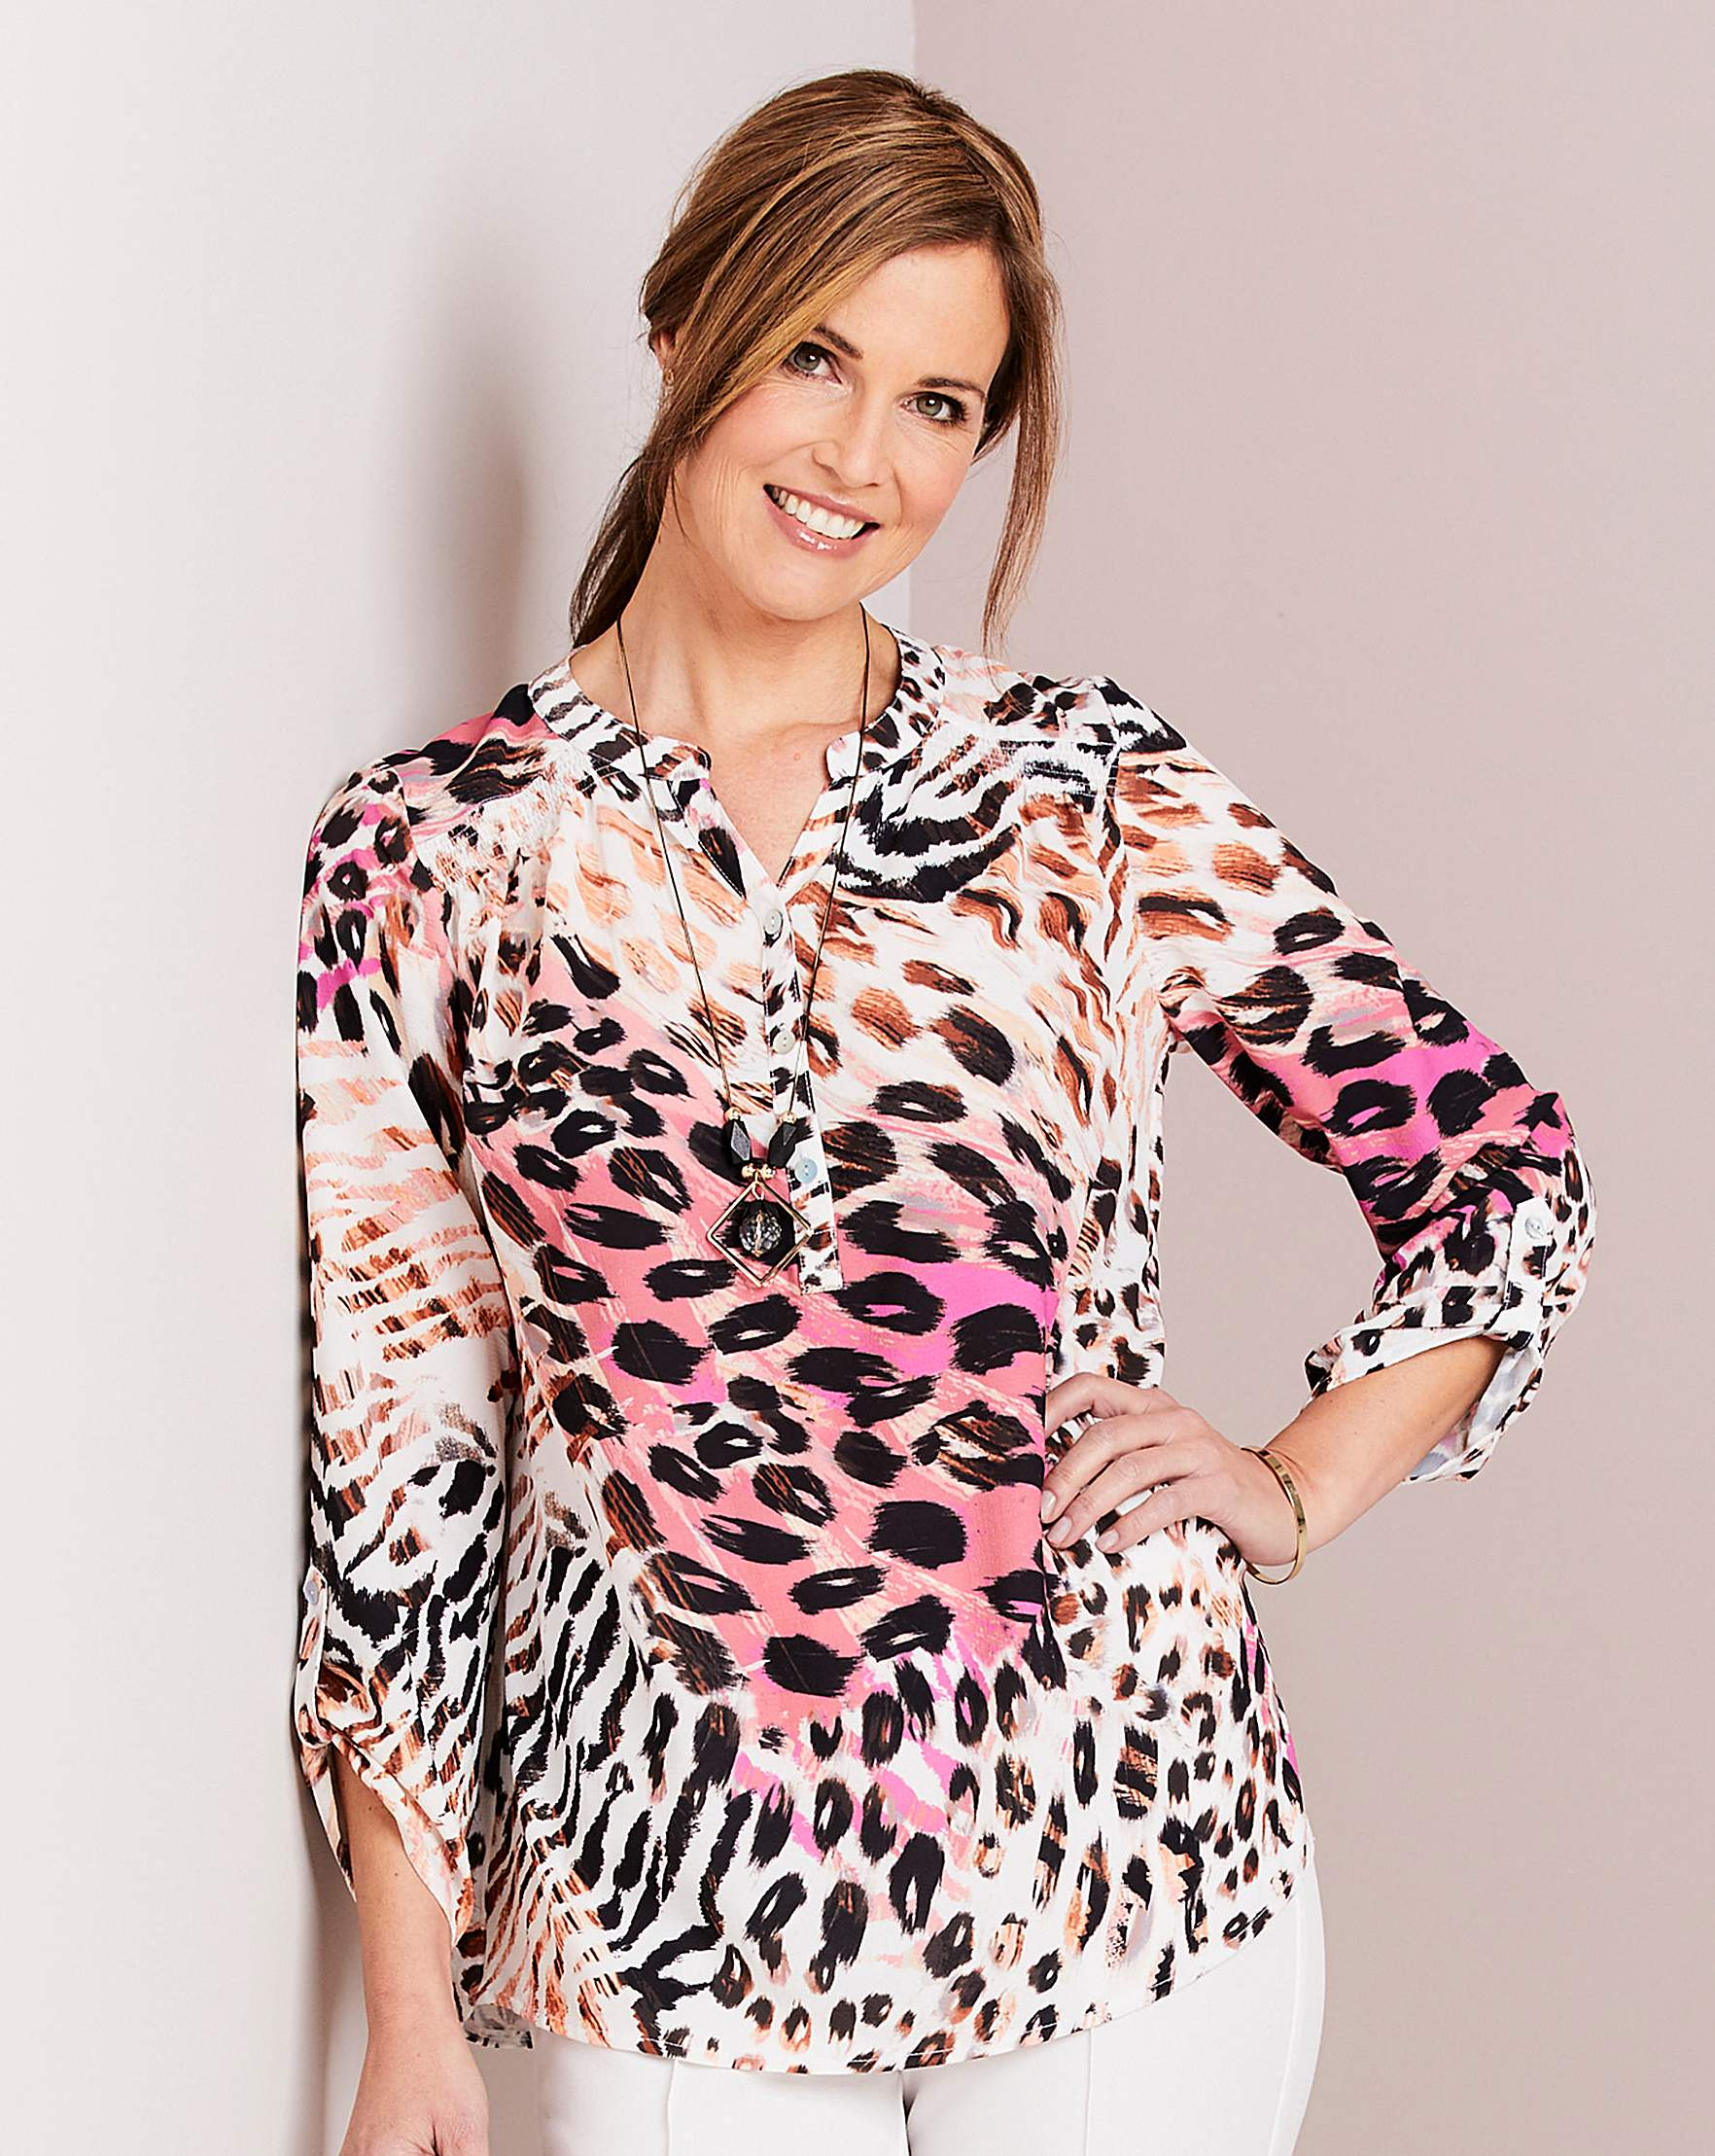 99a1eafd2d Animal Print Blouse and Necklace